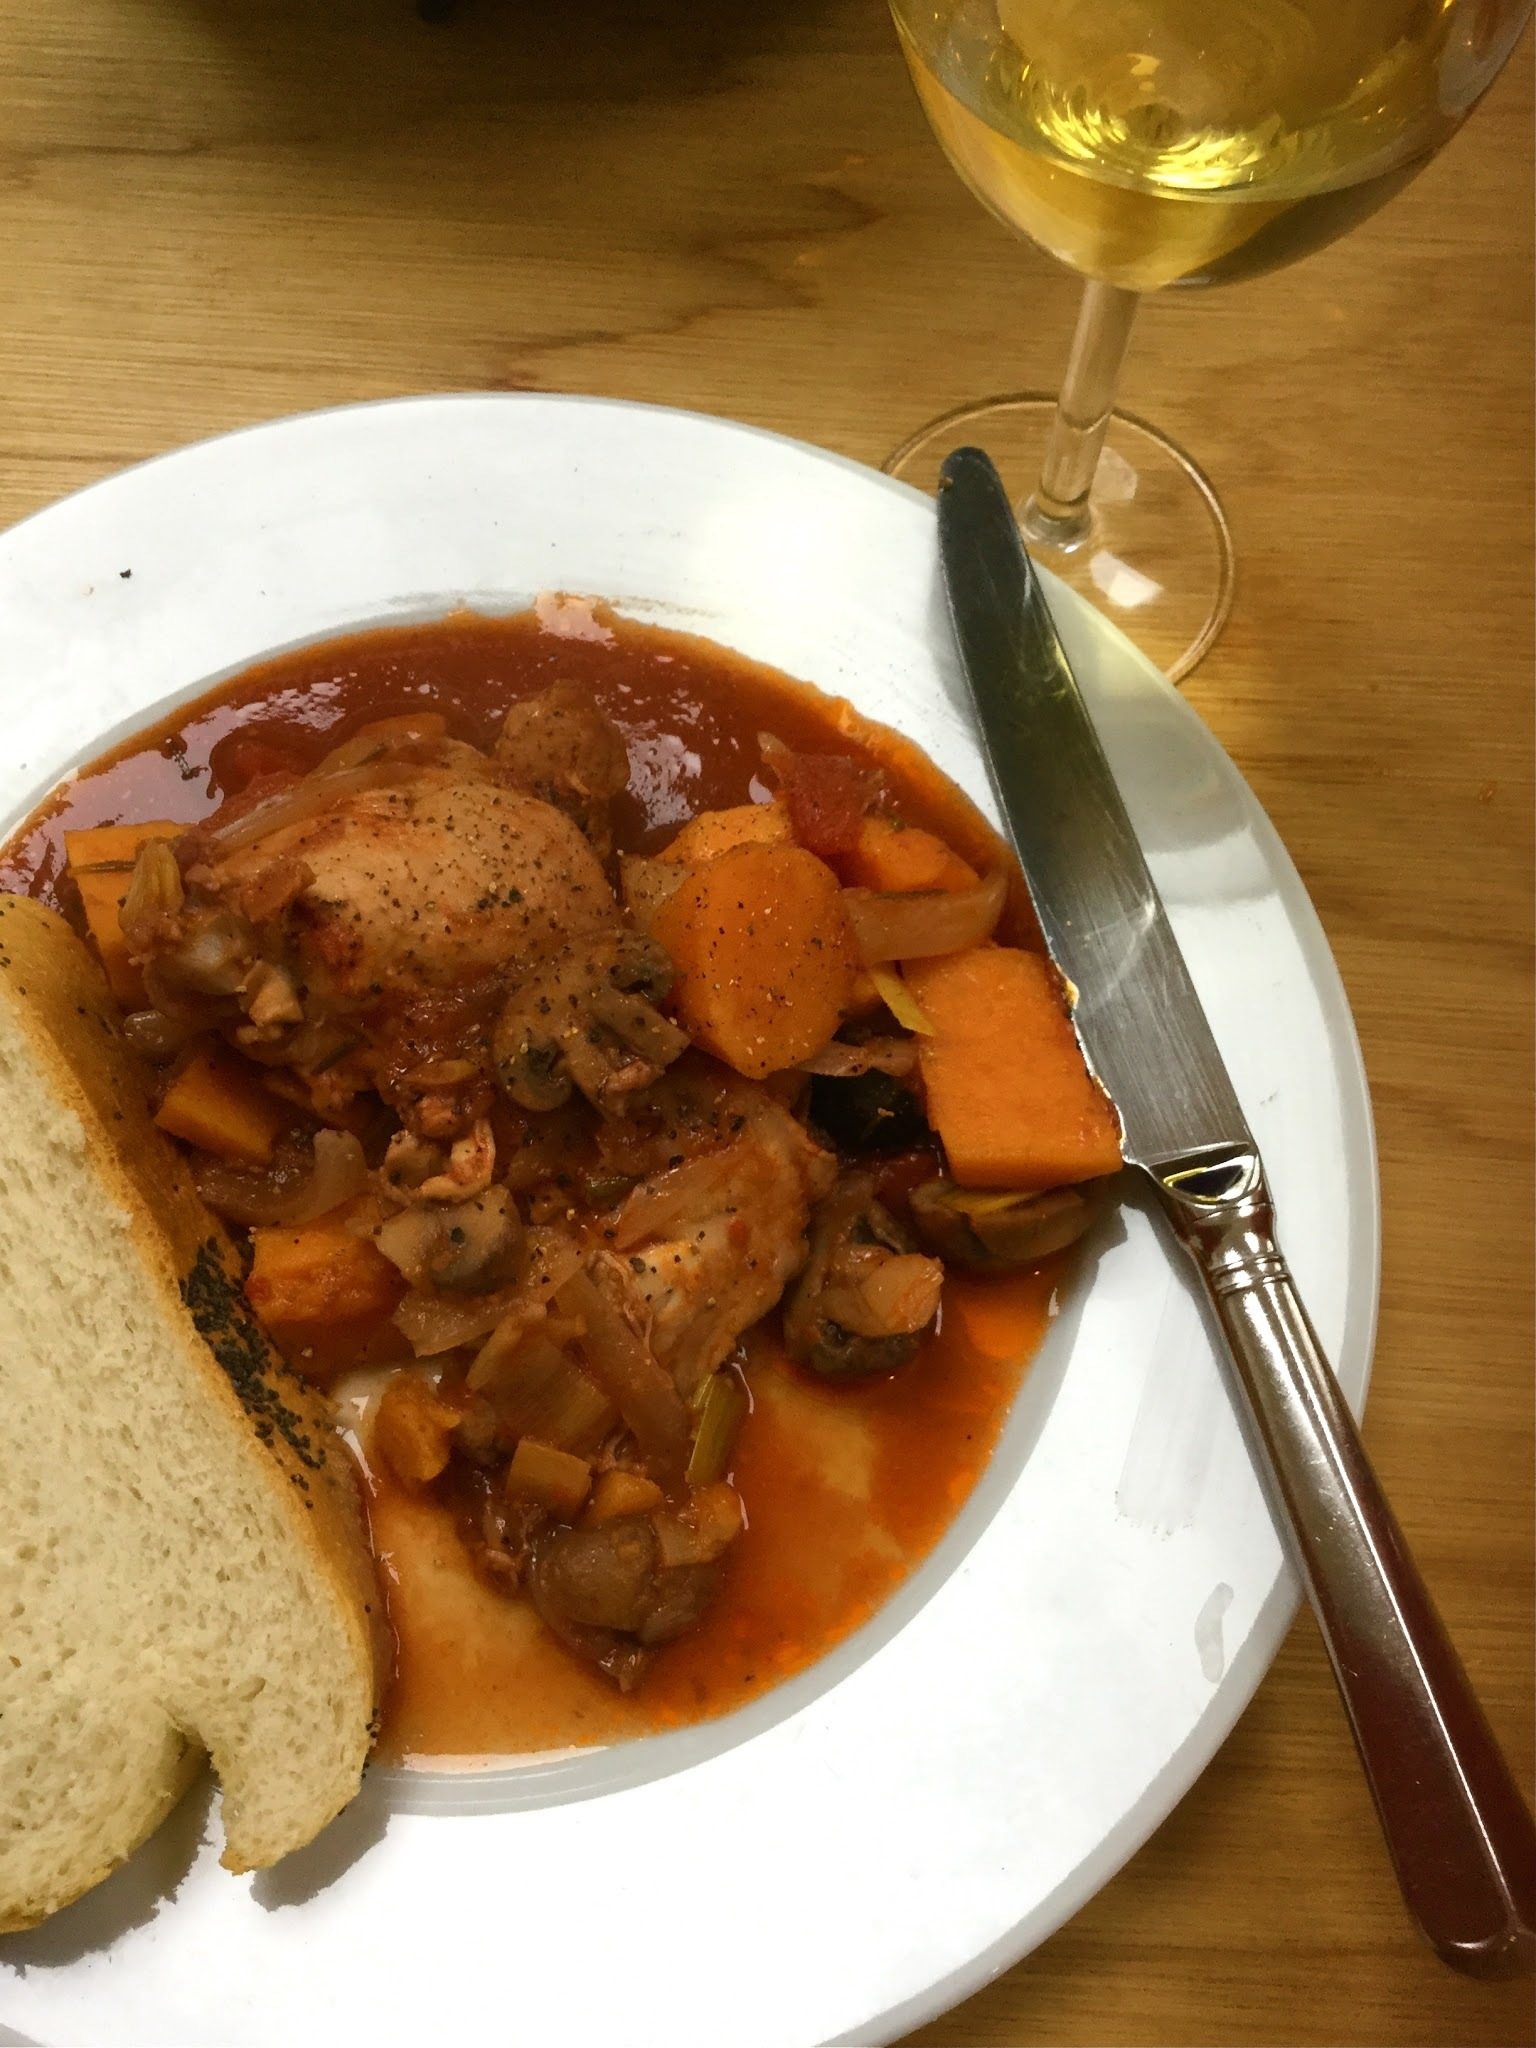 Jamie Oliver's Chicken and Squash Cacciatore